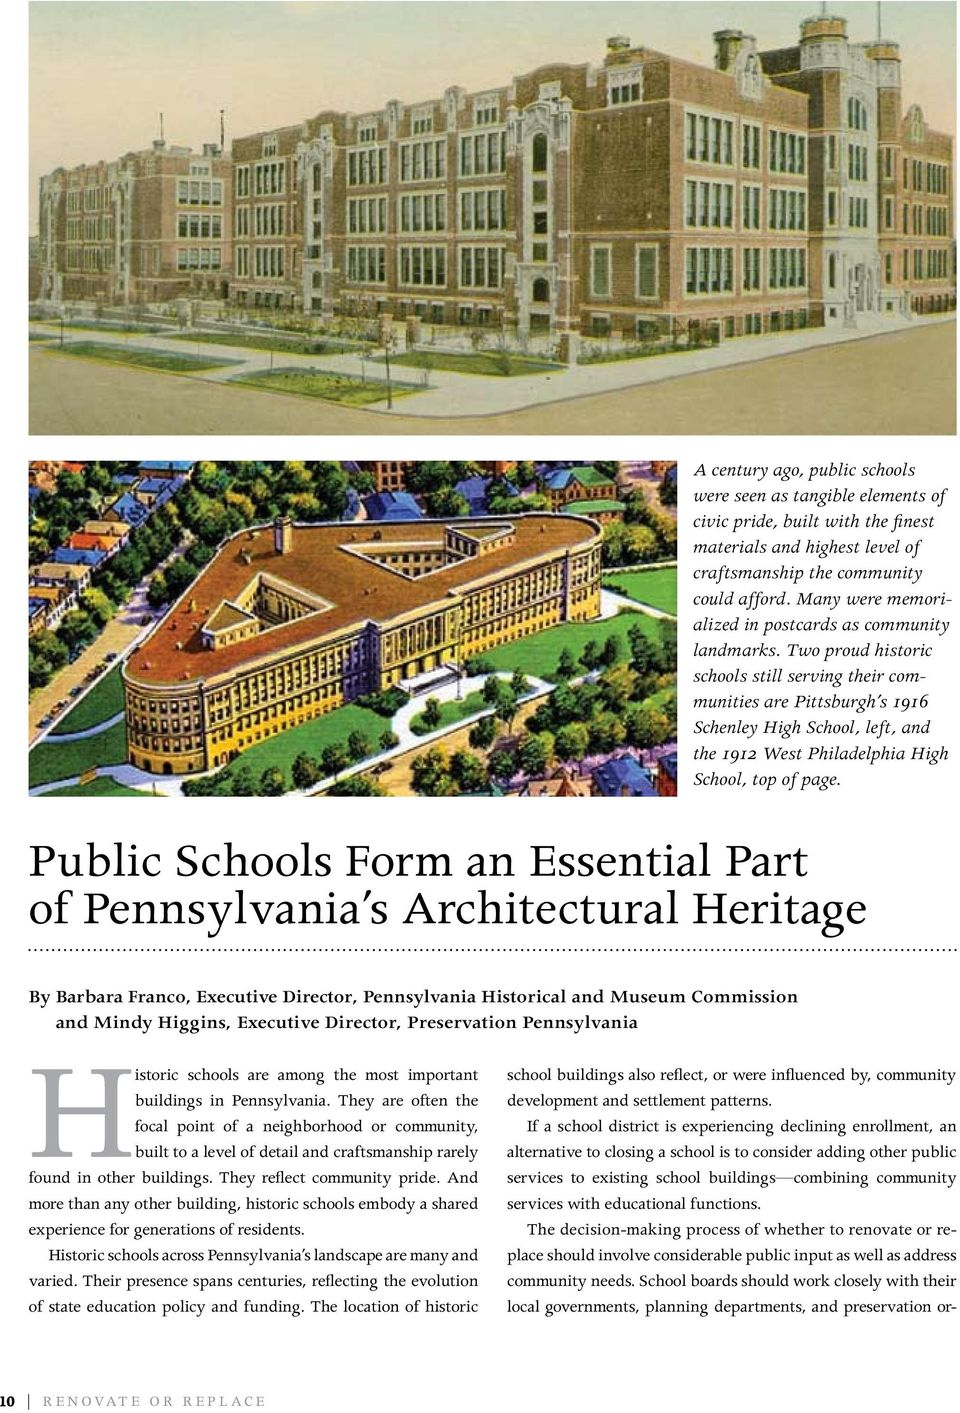 Two proud historic schools still serving their communities are Pittsburgh s 1916 Schenley High School, left, and the 1912 West Philadelphia High School, top of page.